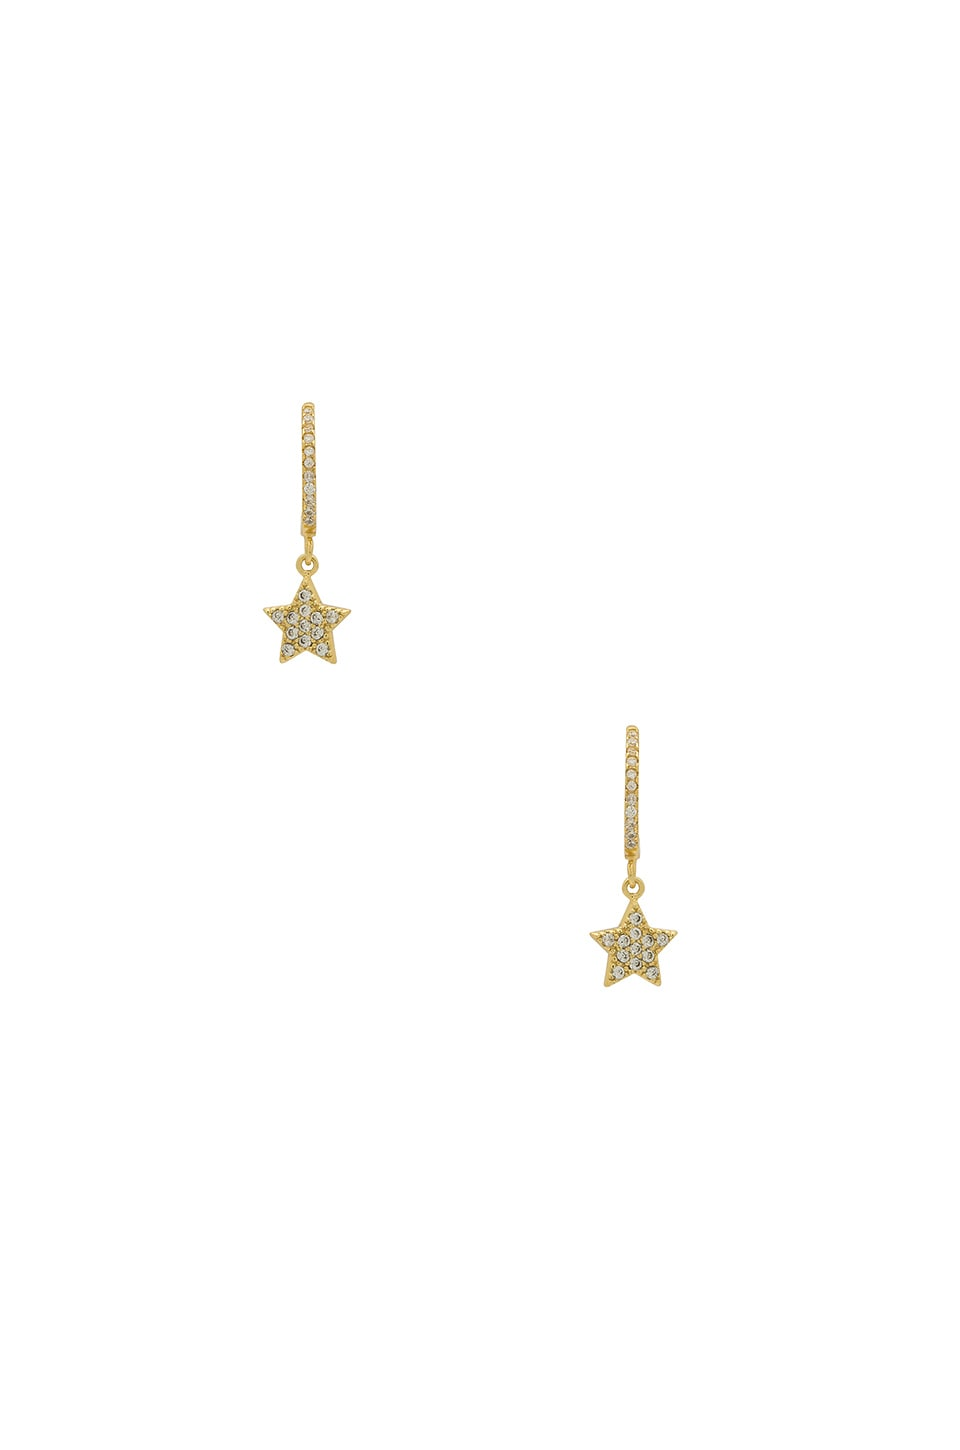 THE M JEWELERS NY HANGING PAVE STAR EARRINGS